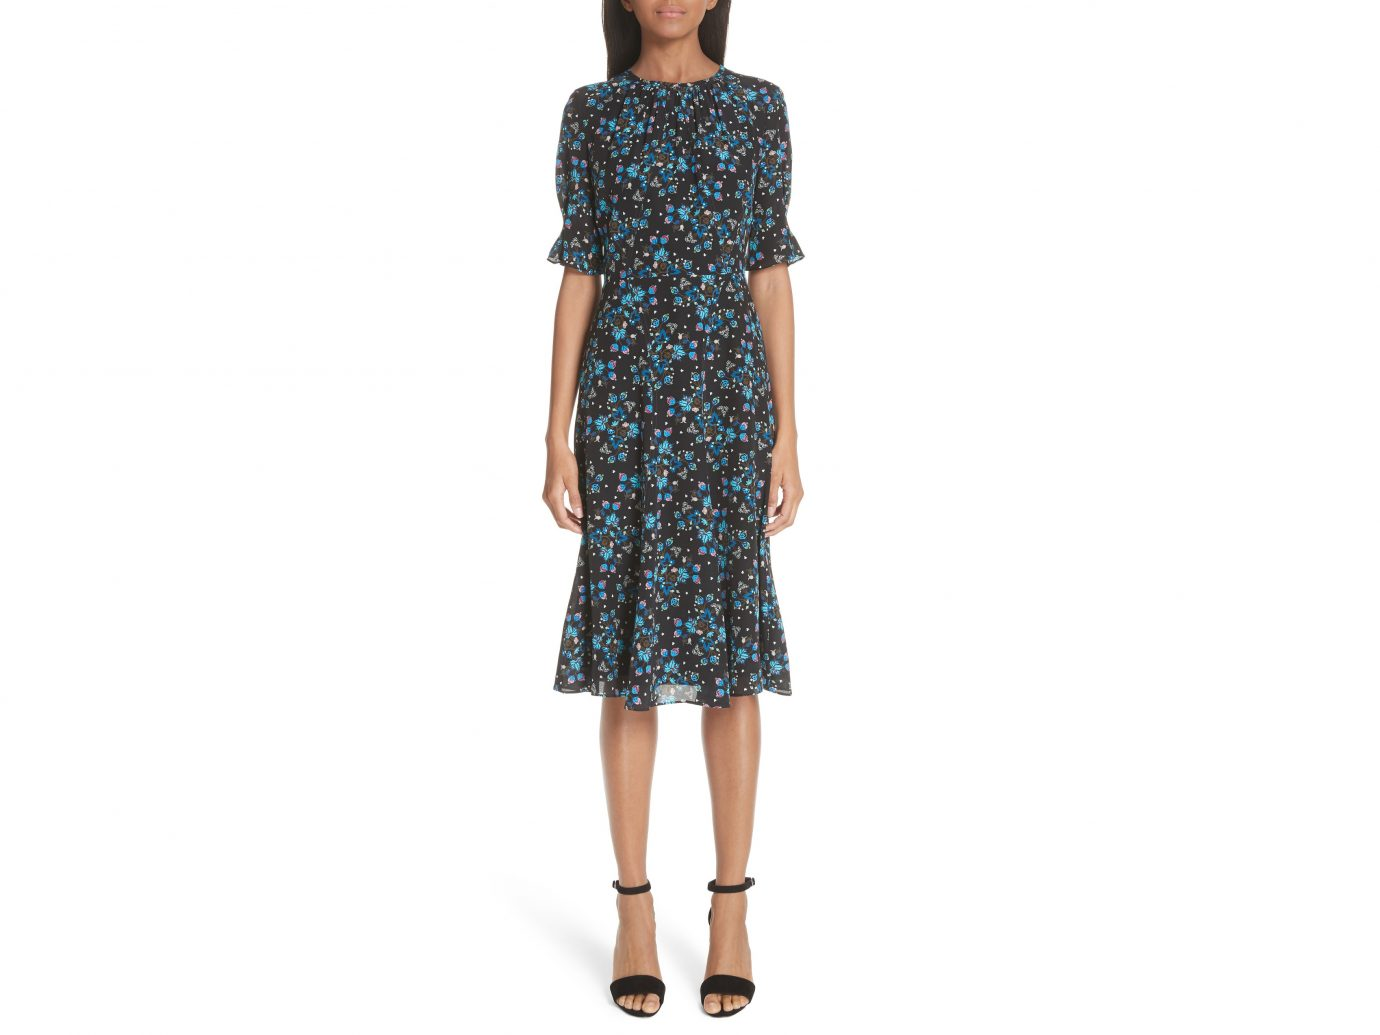 Altuzarra Floral Print Flare Hem Silk Dress $